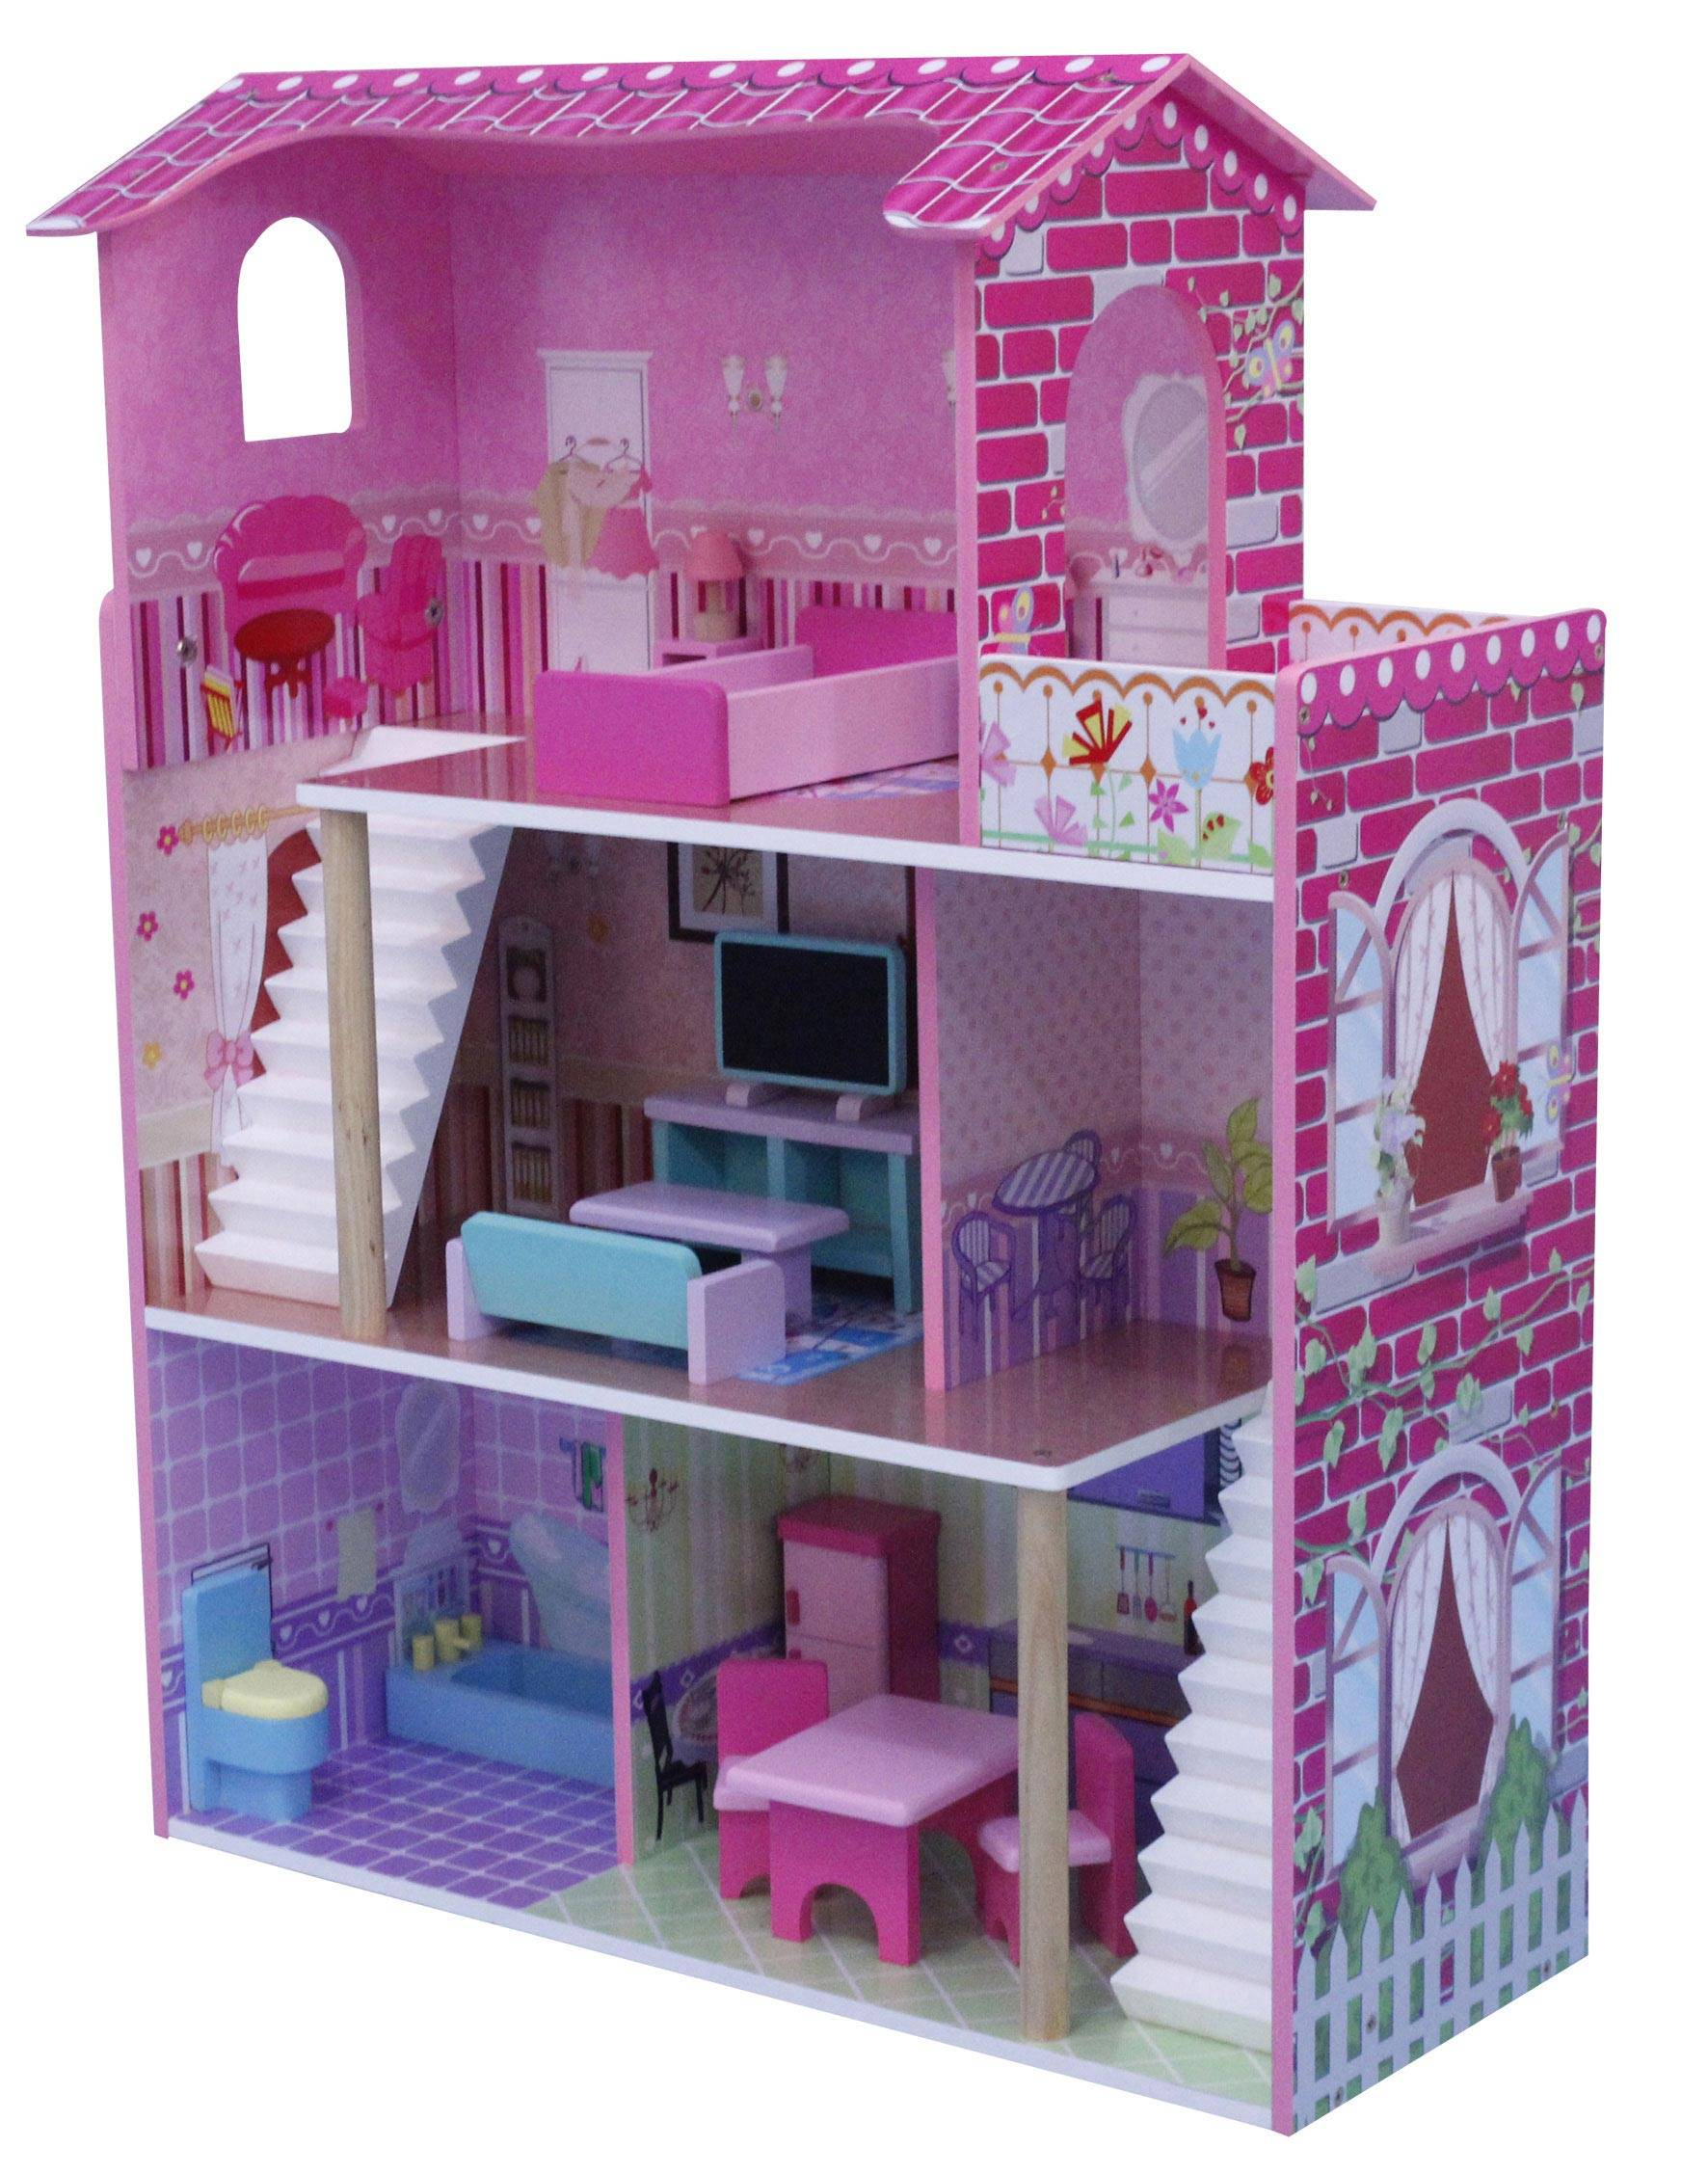 Doll toy house